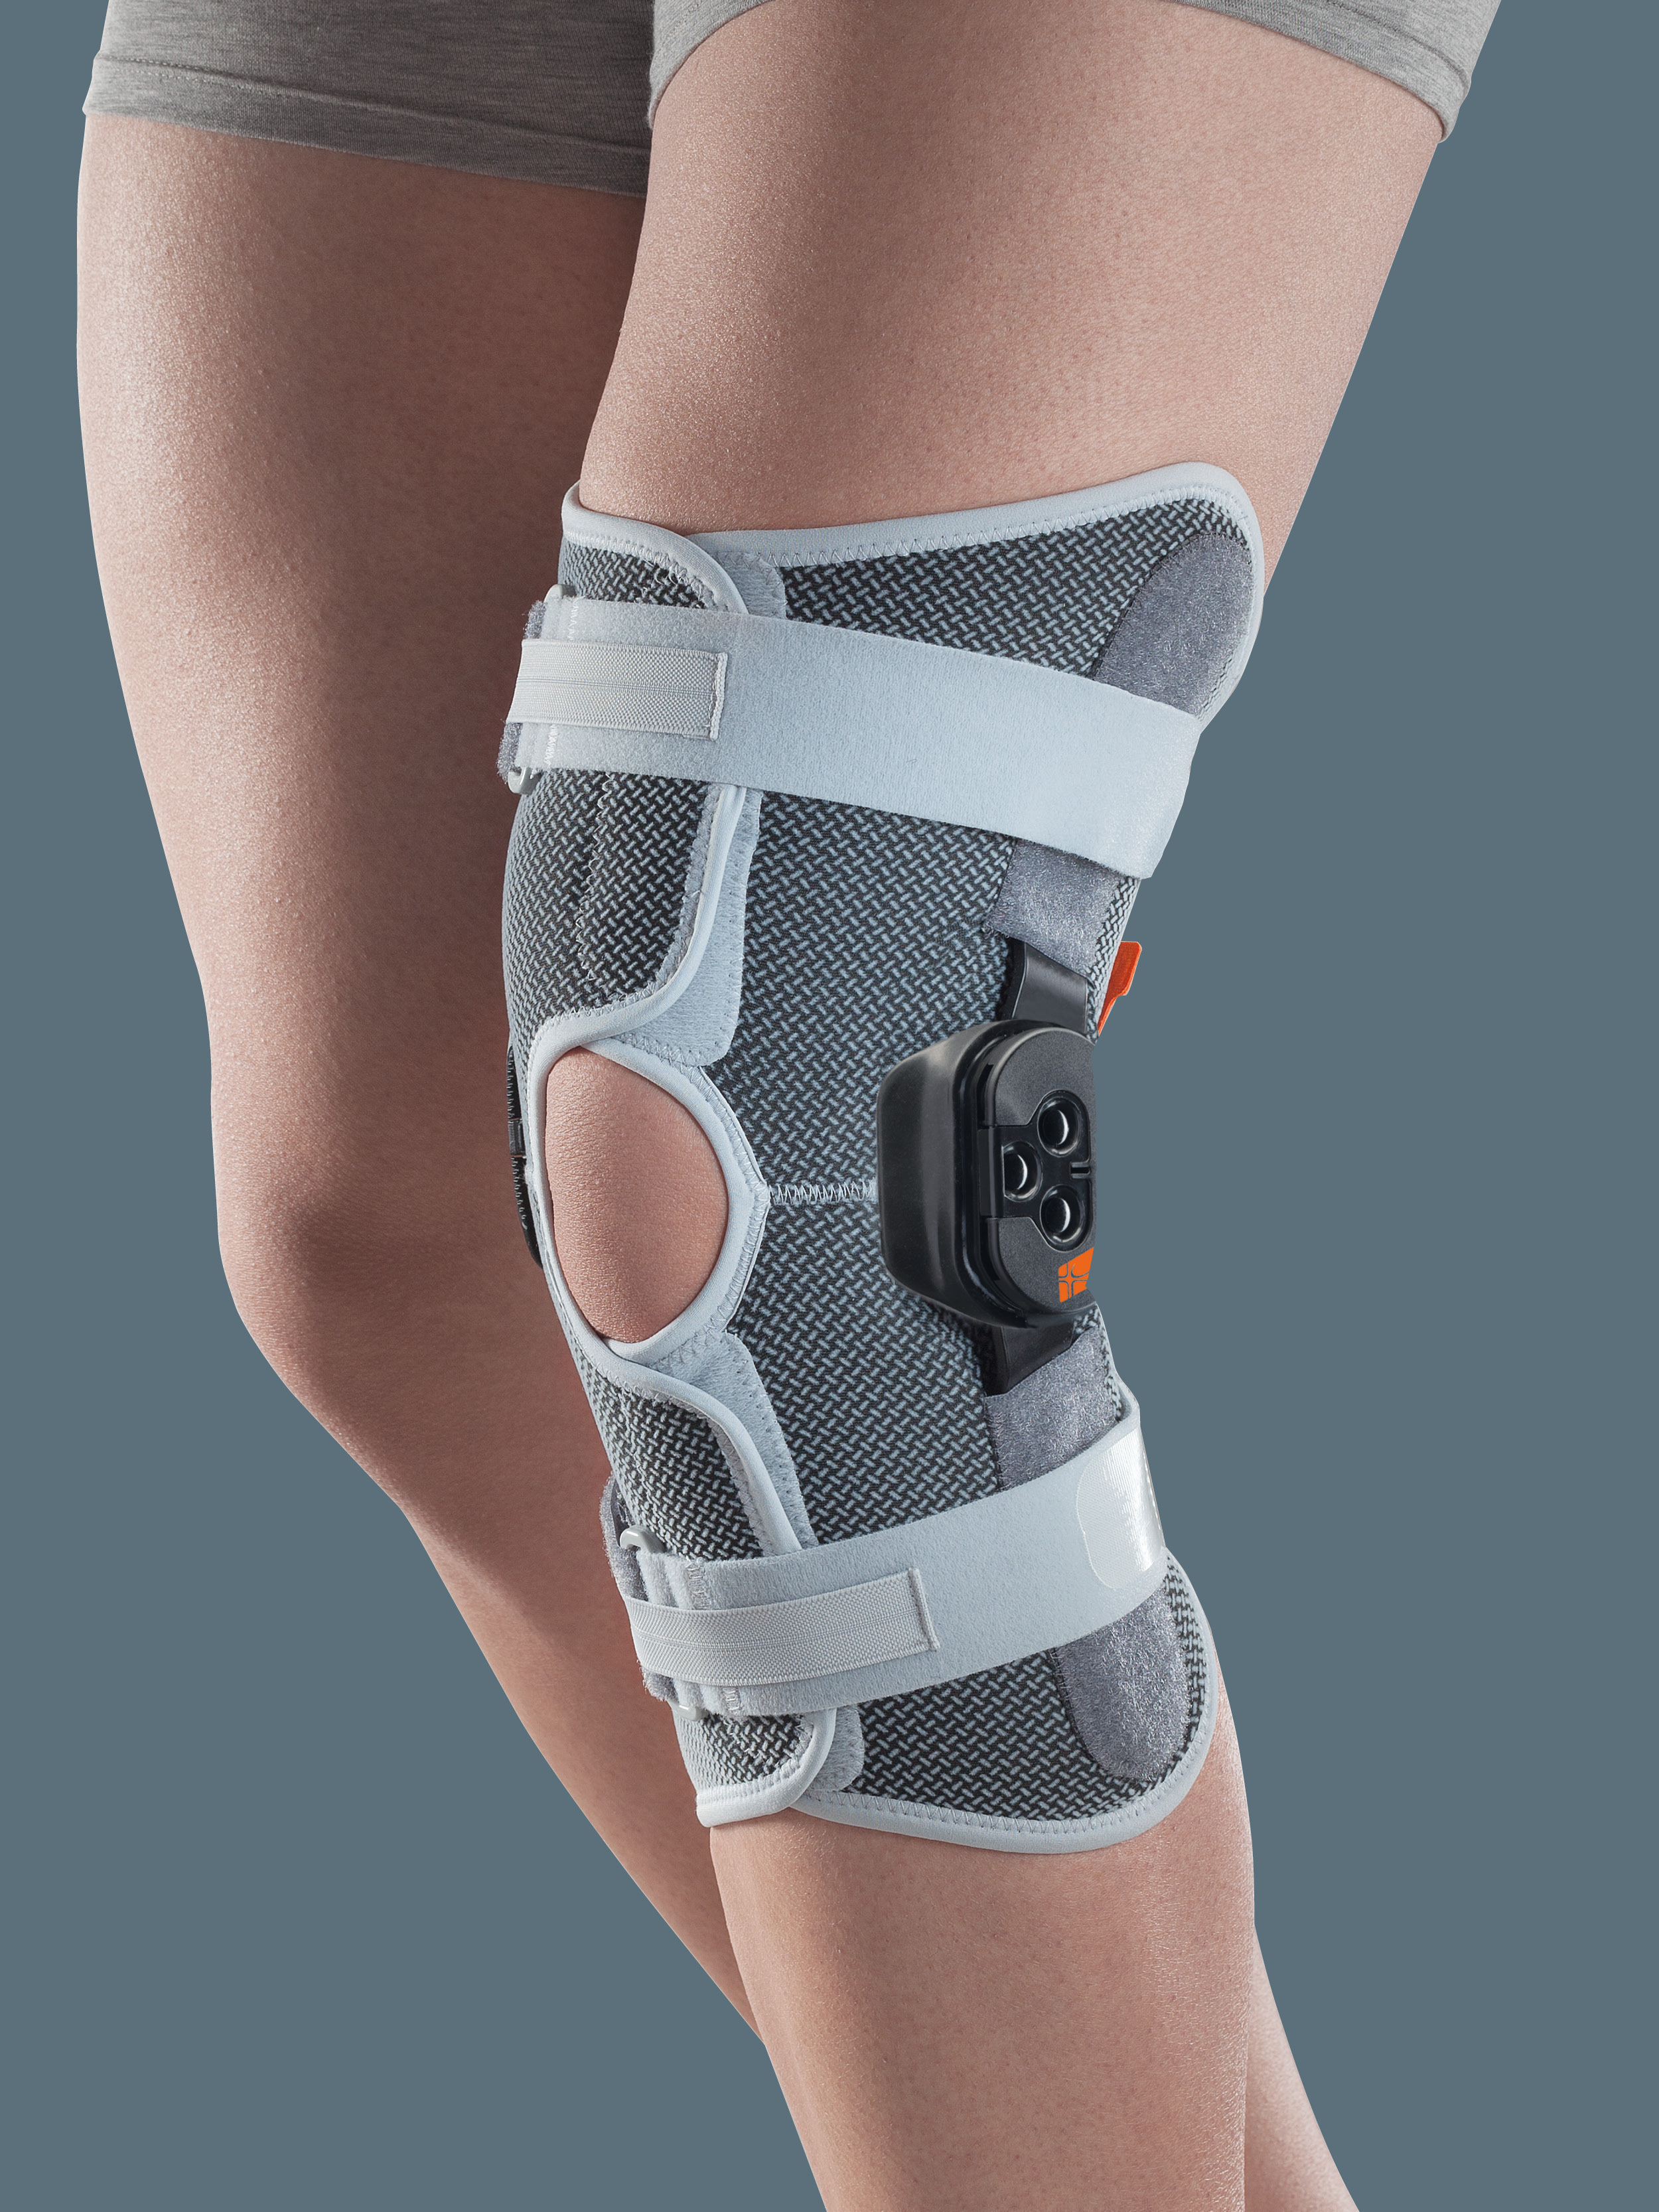 GENUSKILL 22A - Knee orthosis with hinges and F-E control, short wraparound